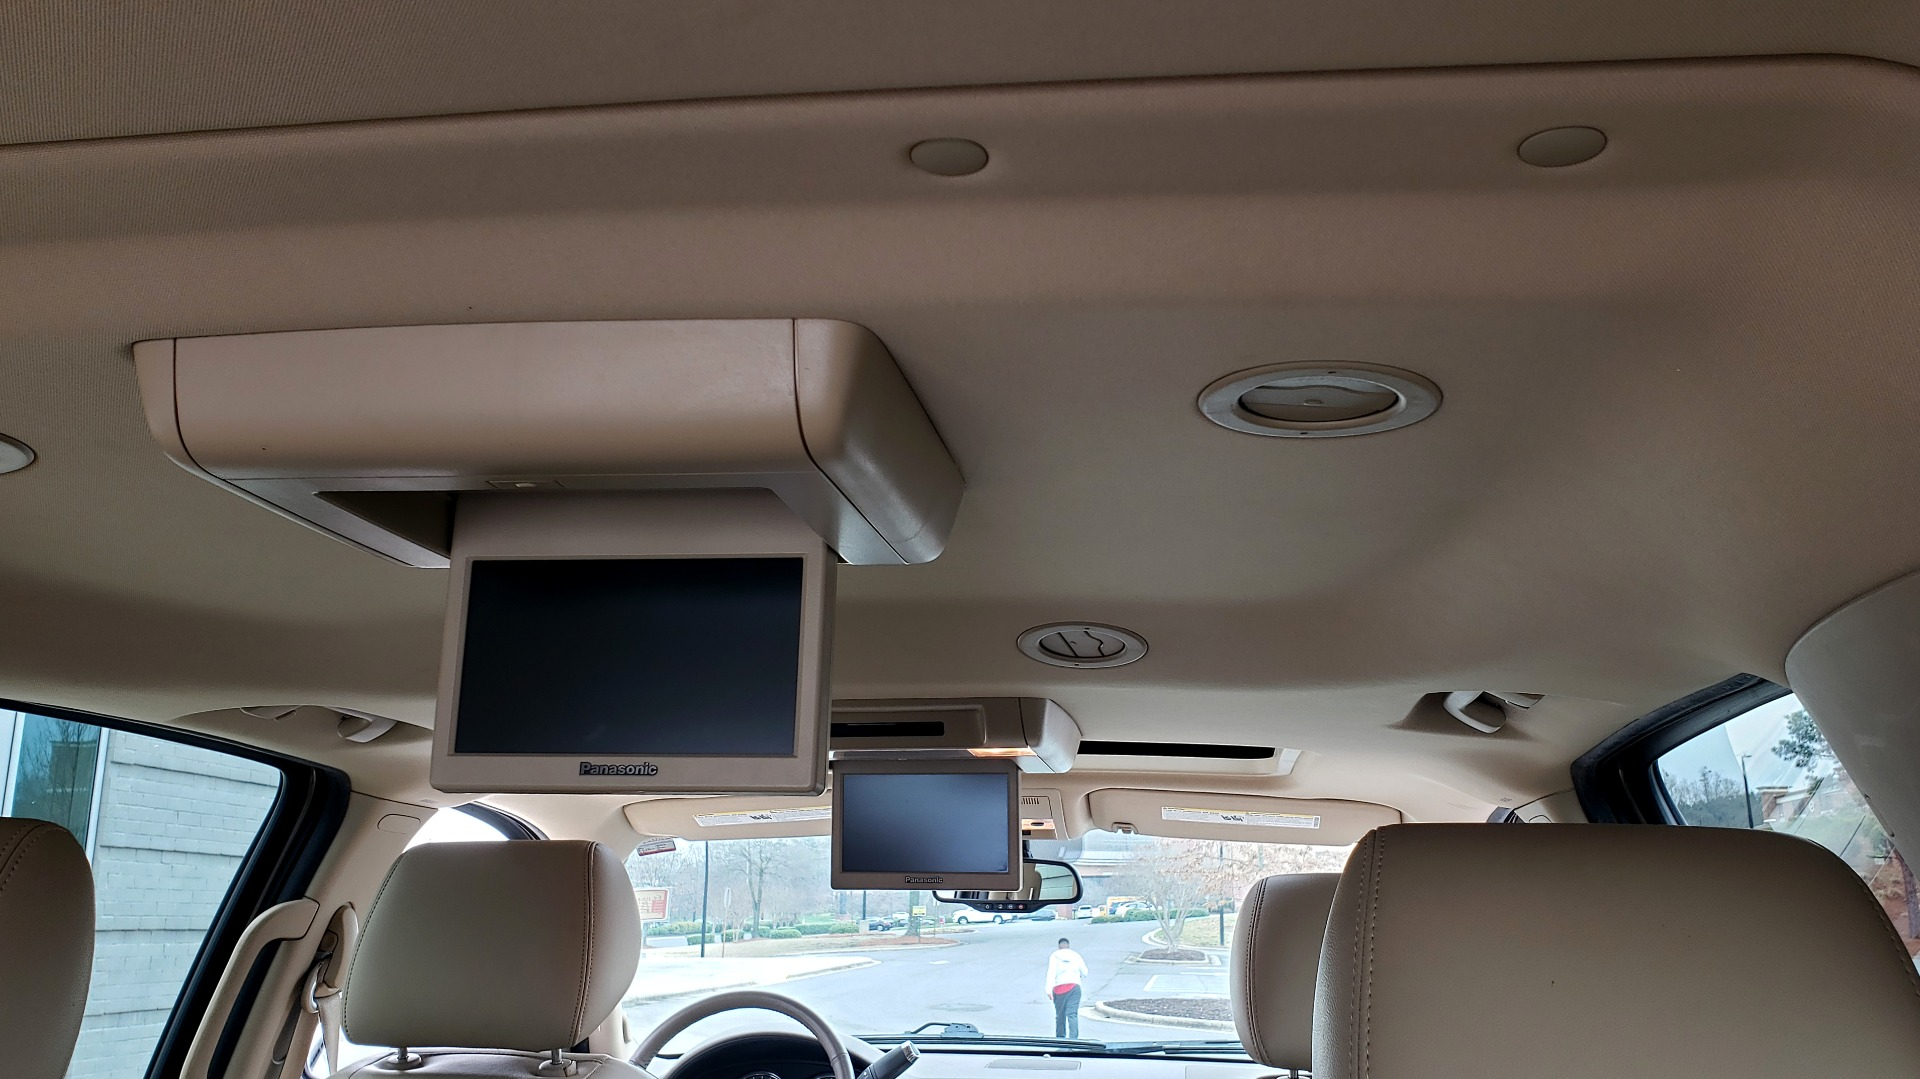 Used 2014 Chevrolet SUBURBAN LTZ / 4WD / ENTERTAINMENT / NAV / SUNROOF / TRAILER PKG for sale Sold at Formula Imports in Charlotte NC 28227 19